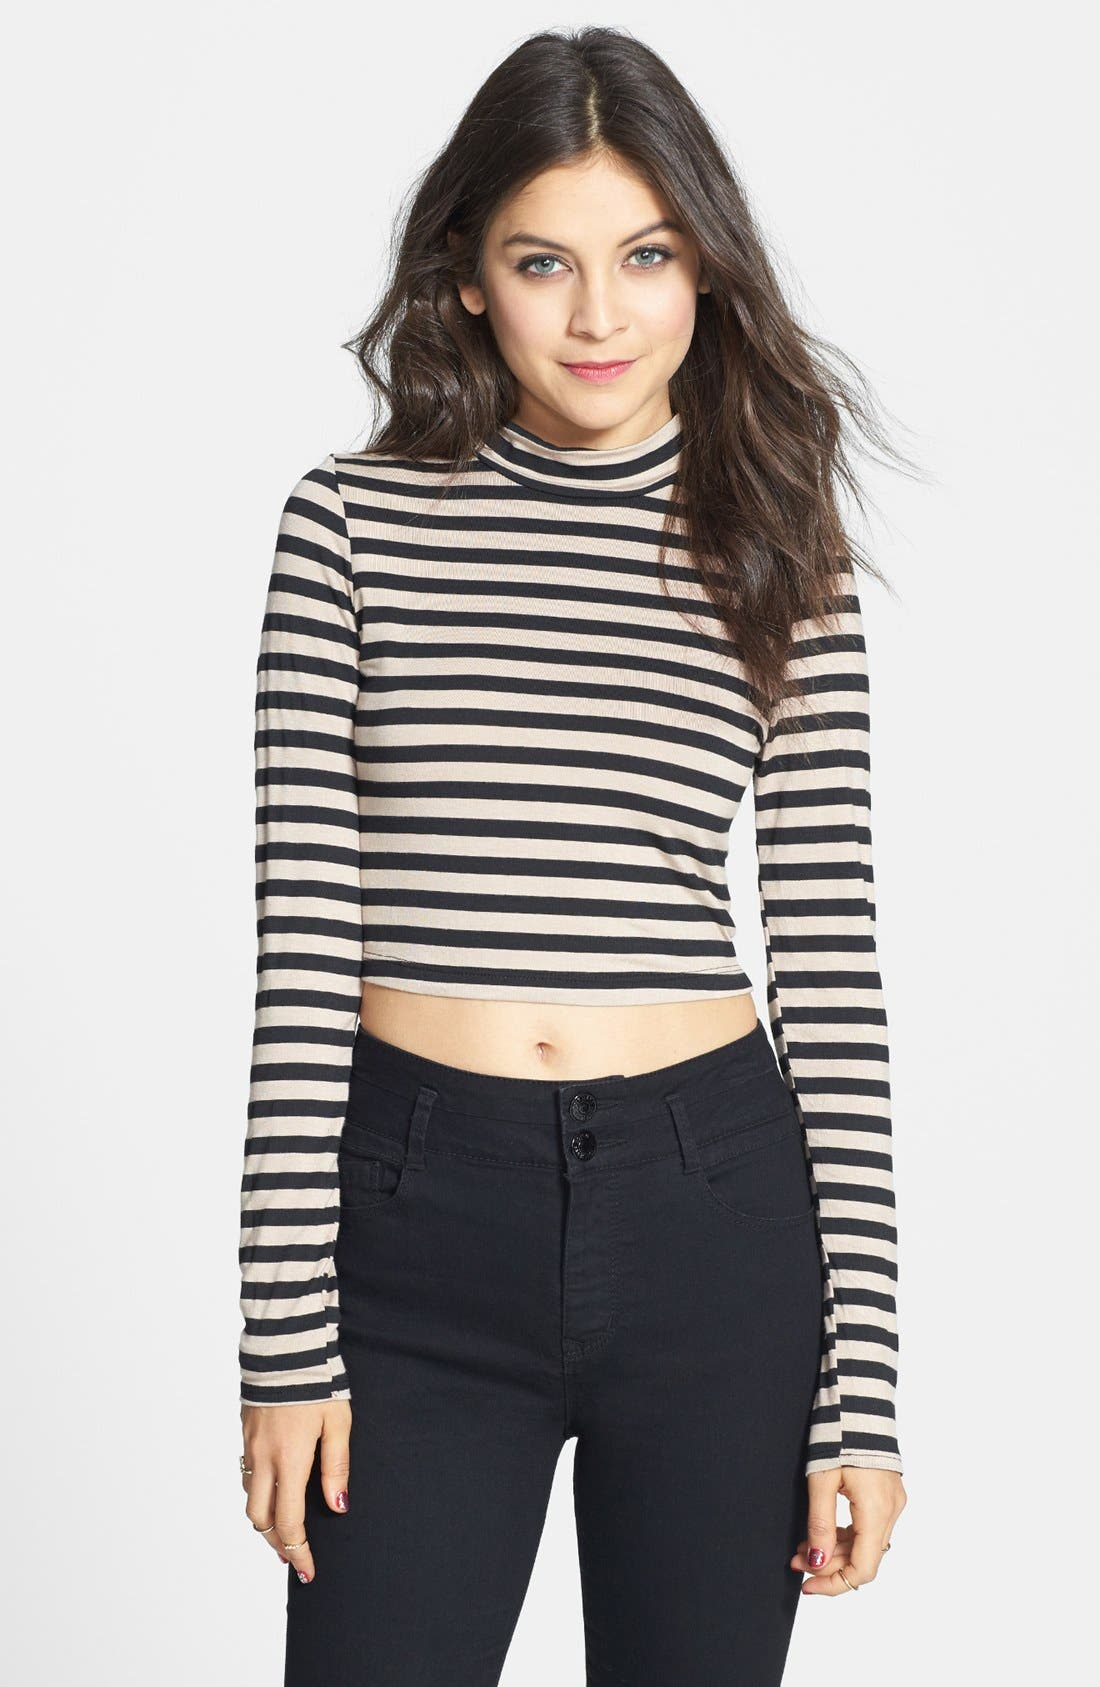 Alternate Image 1 Selected - Living Doll Mock Neck Crop Top (Juniors) (Online Only)